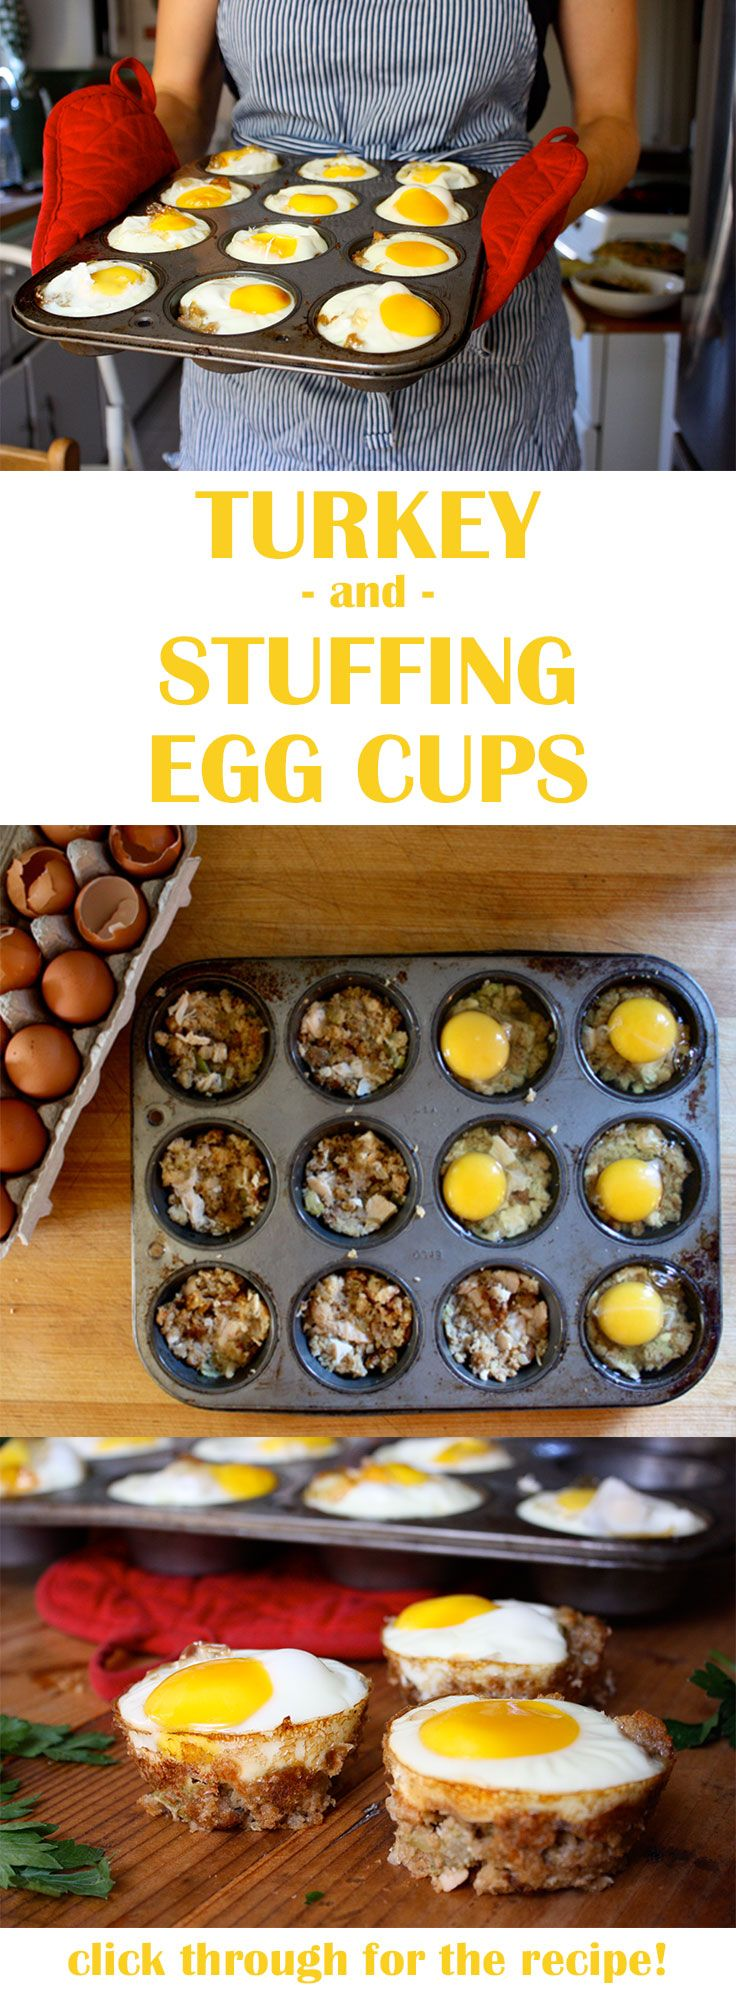 Turkey And Stuffing Egg Cups Recipe Healthy Recipes